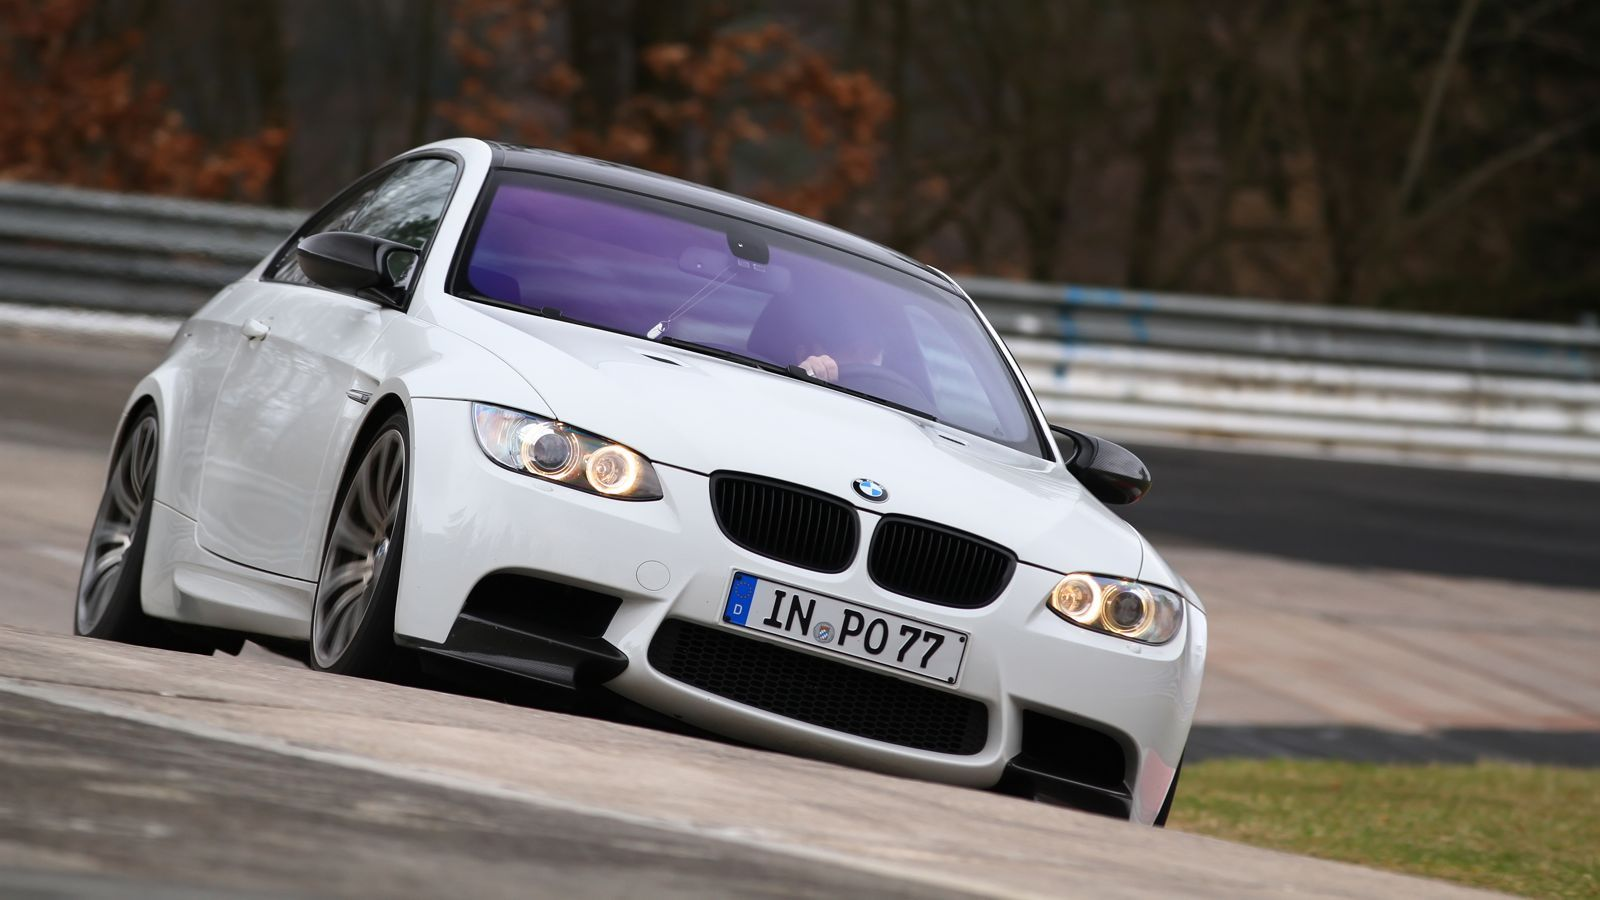 Bmw m3 e92 check out these bimmers http